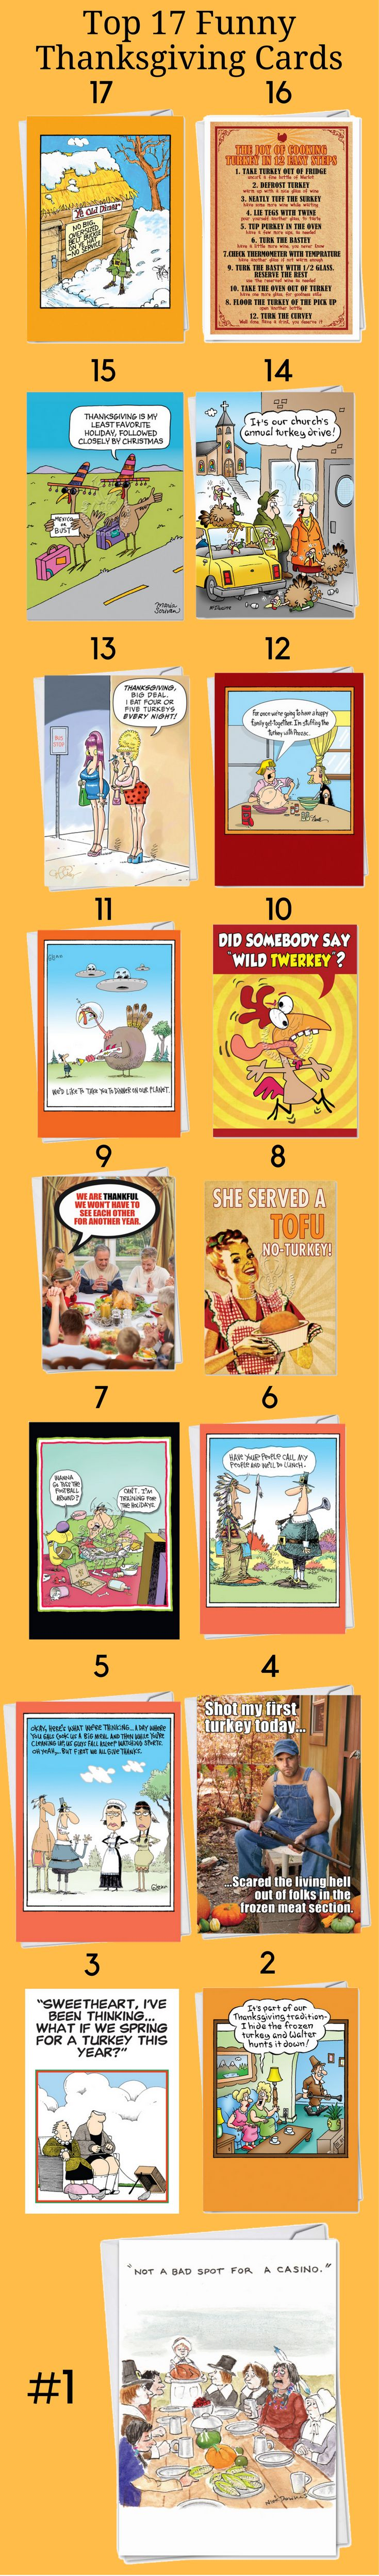 13 best funny thanksgiving cards images on pinterest funny cards find a colorful and side splitting collection of funny thanksgiving cards for sale at nobleworks cards kristyandbryce Image collections